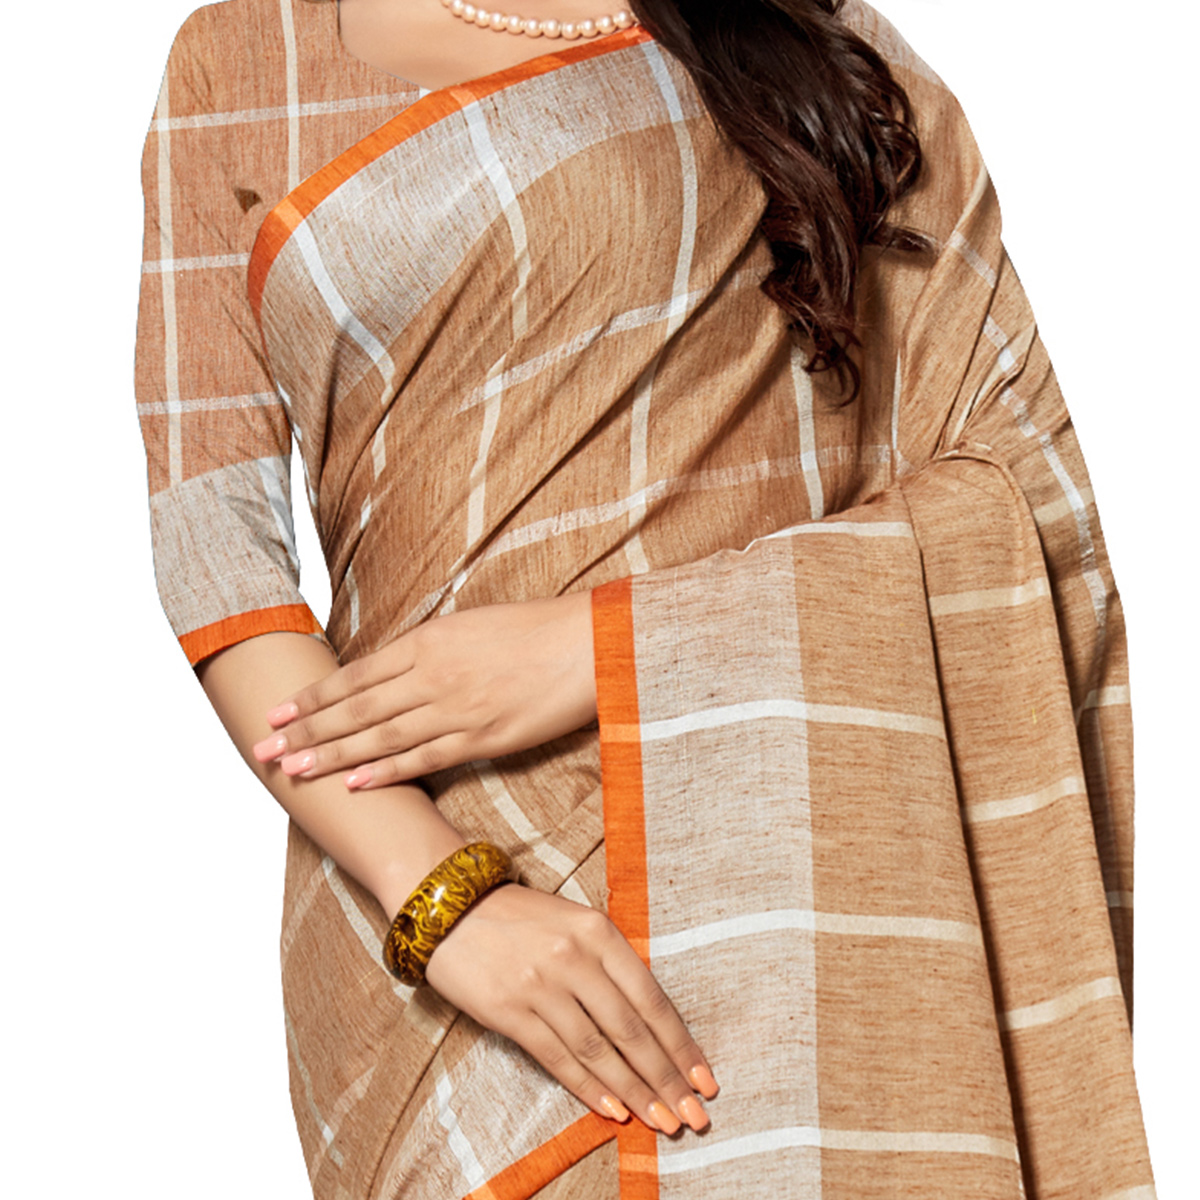 Hypnotic Brown Colored Fesive Wear Stripe Print Cotton Silk Saree With Tassels